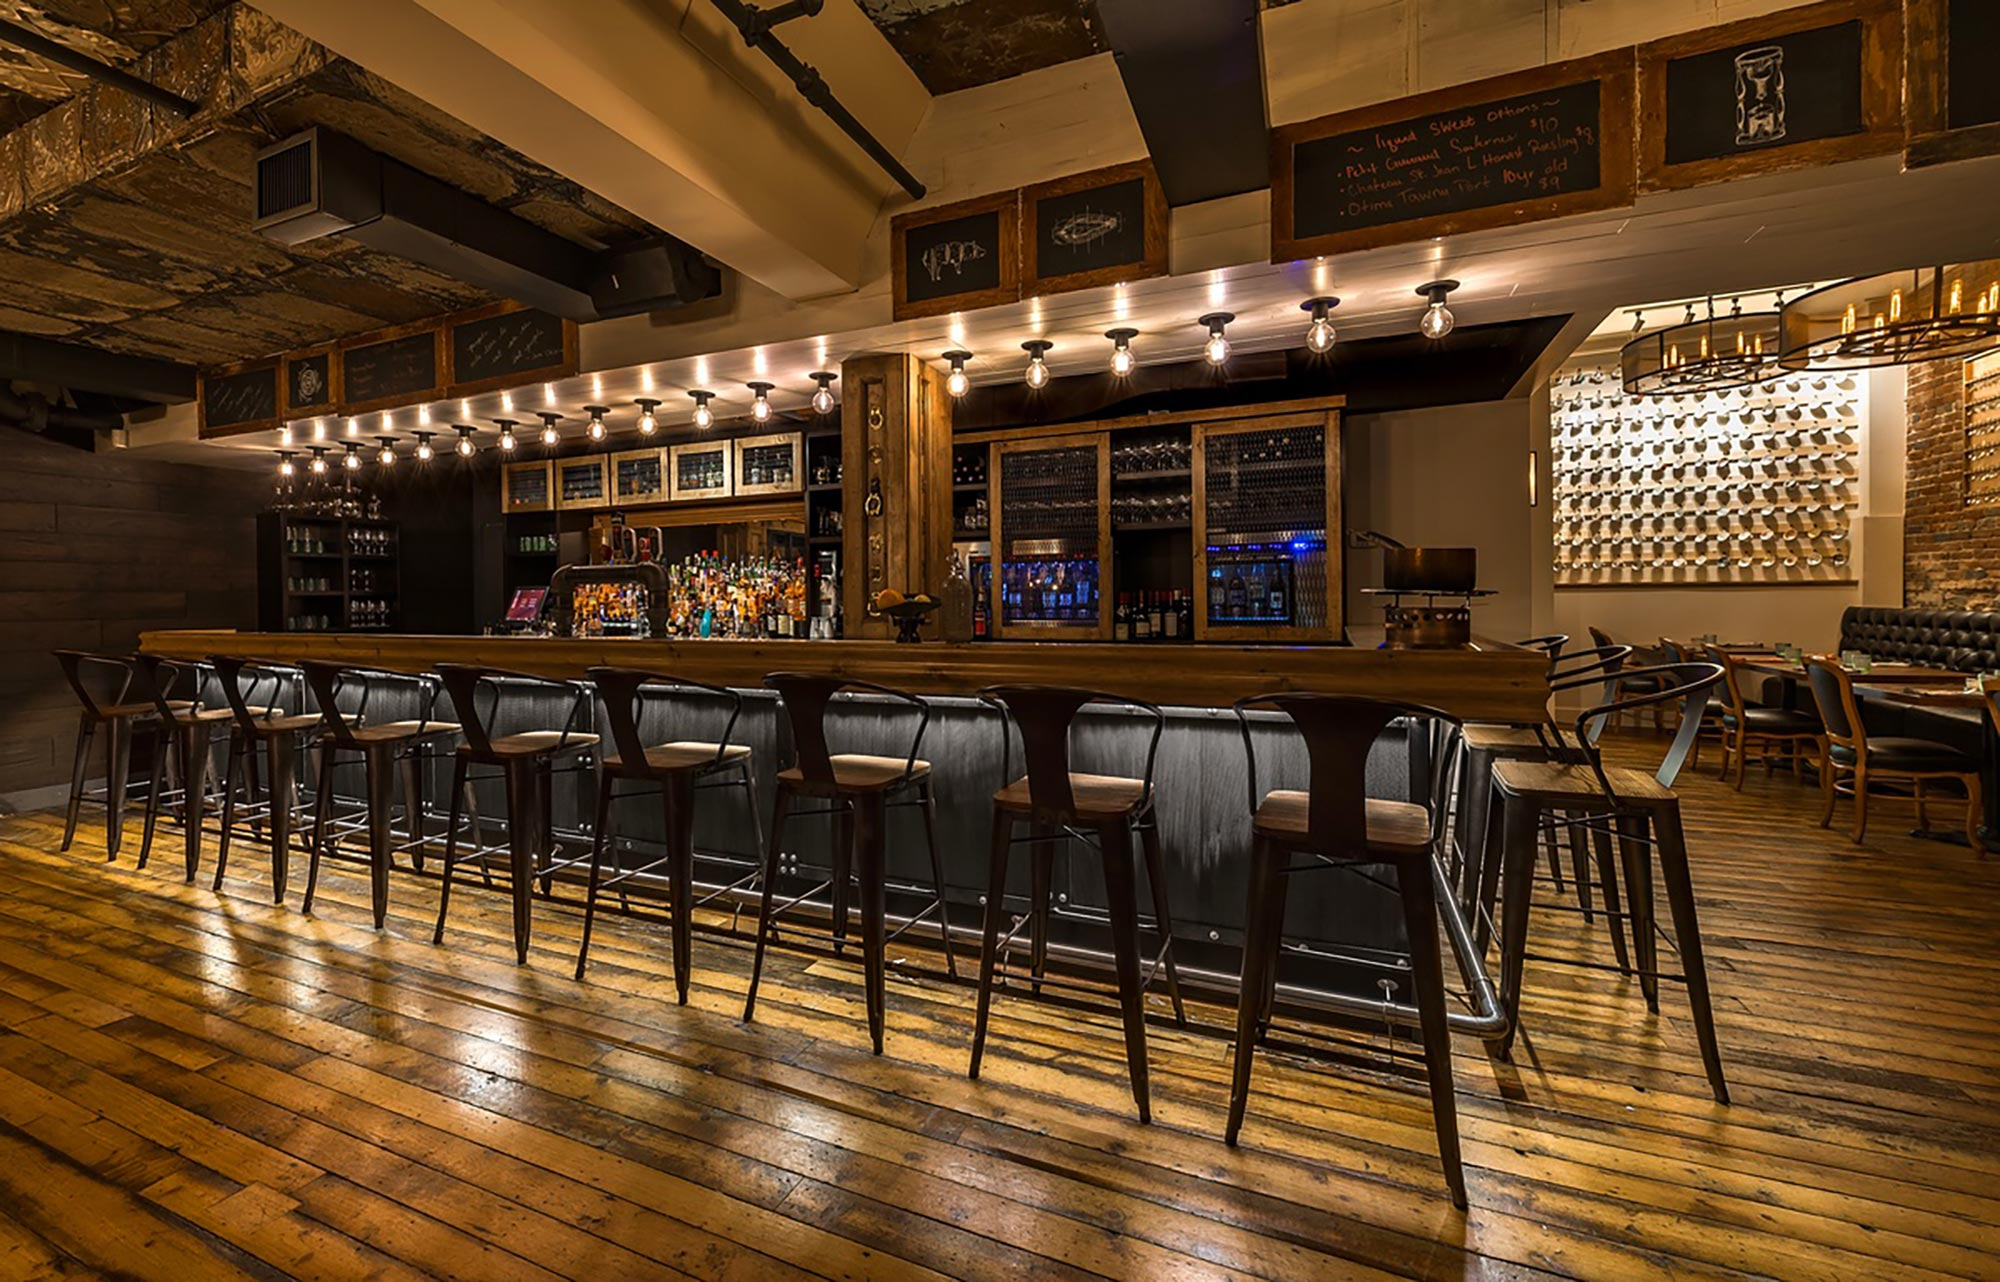 interior-design-restaurant-halifax-vintage-bar.jpg